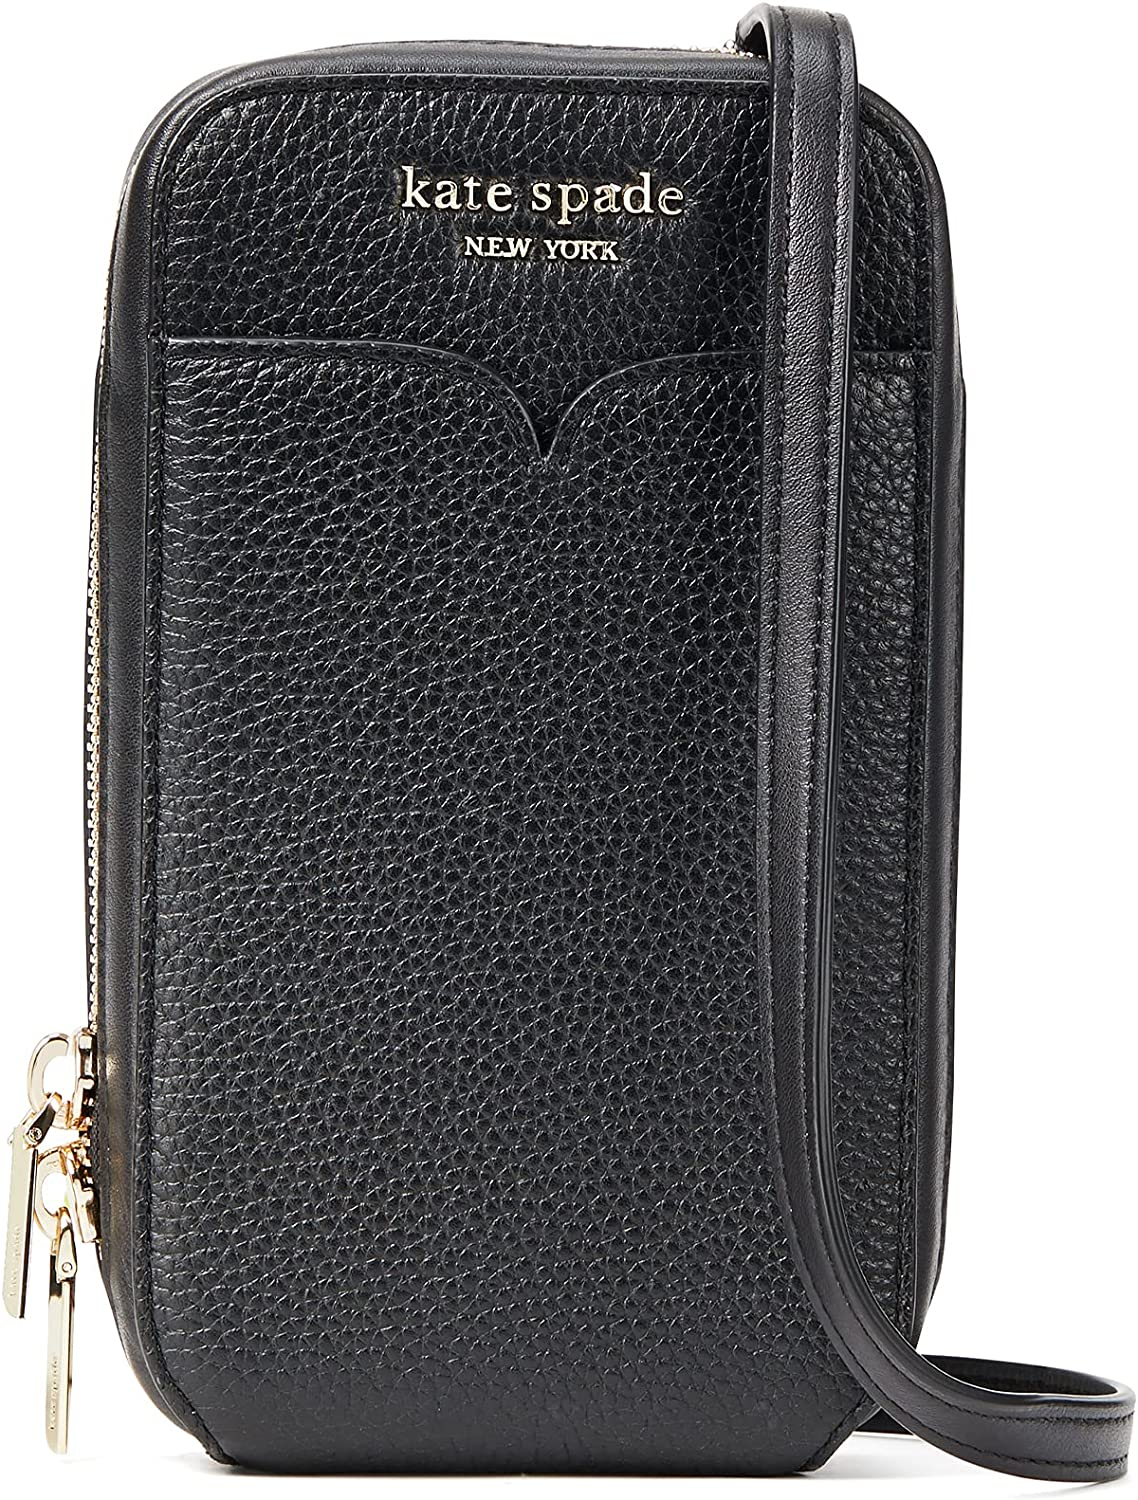 Kate Spade New York Zeezee North/South Phone Crossbody for iPhone Black One Size